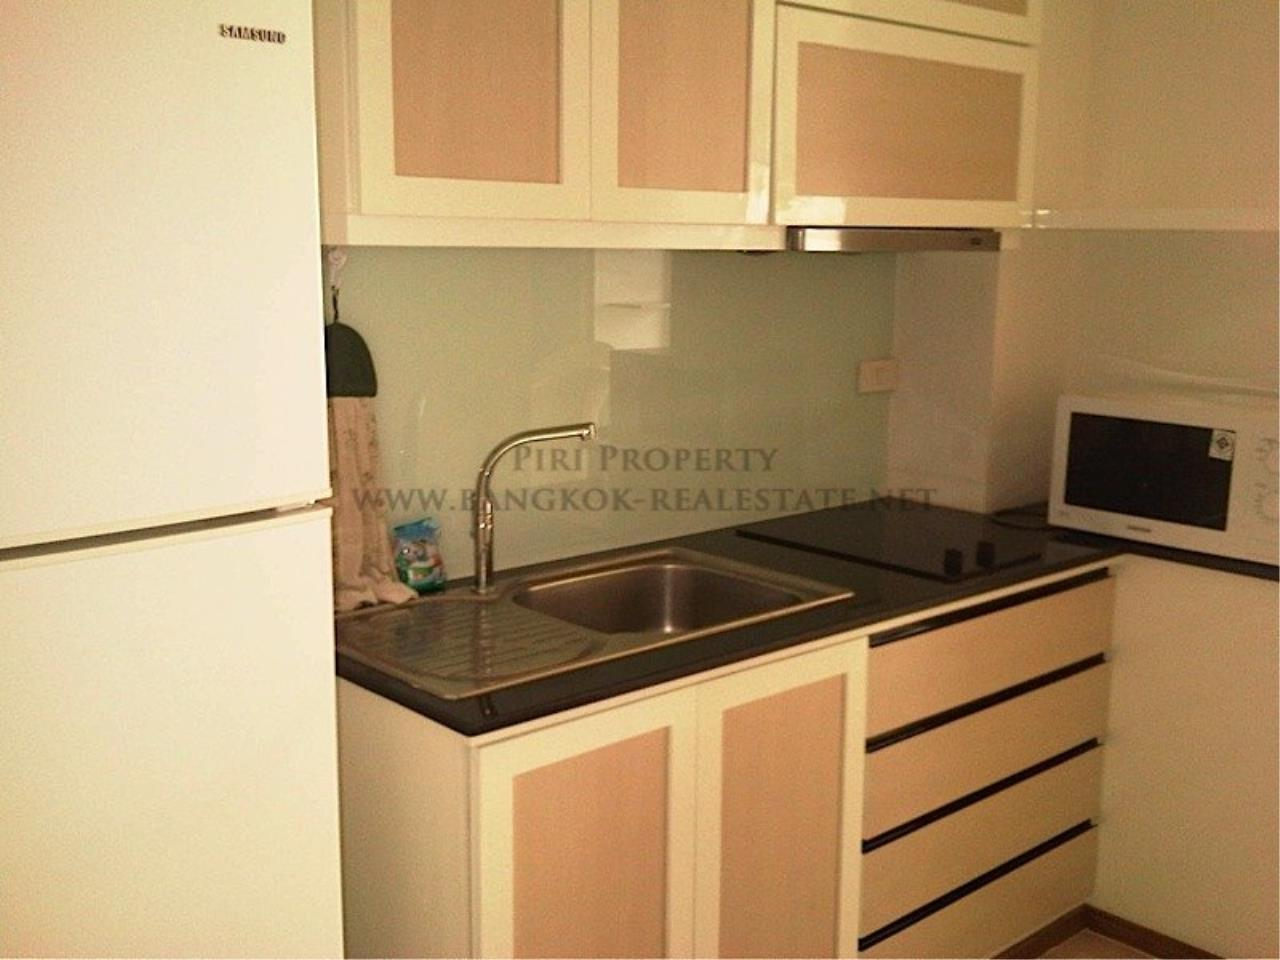 Piri Property Agency's Noble Reflex - Ari BTS right at your doorstep - 1 Bedroom 6